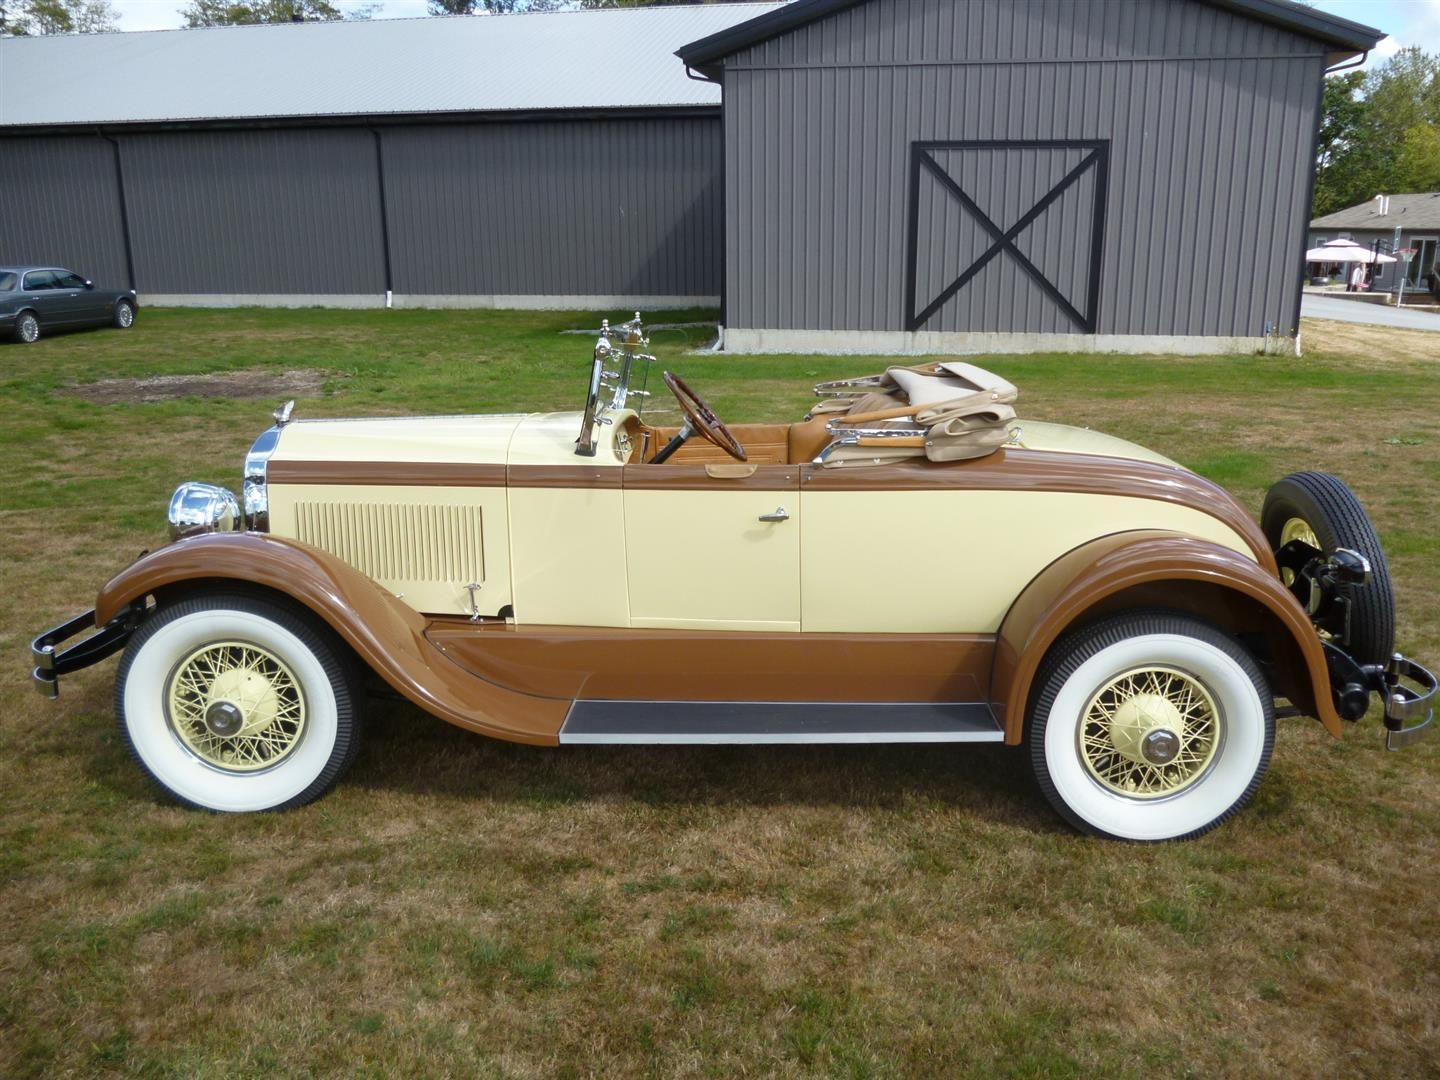 1927 Chrysler Imperial Series 80 Roadster